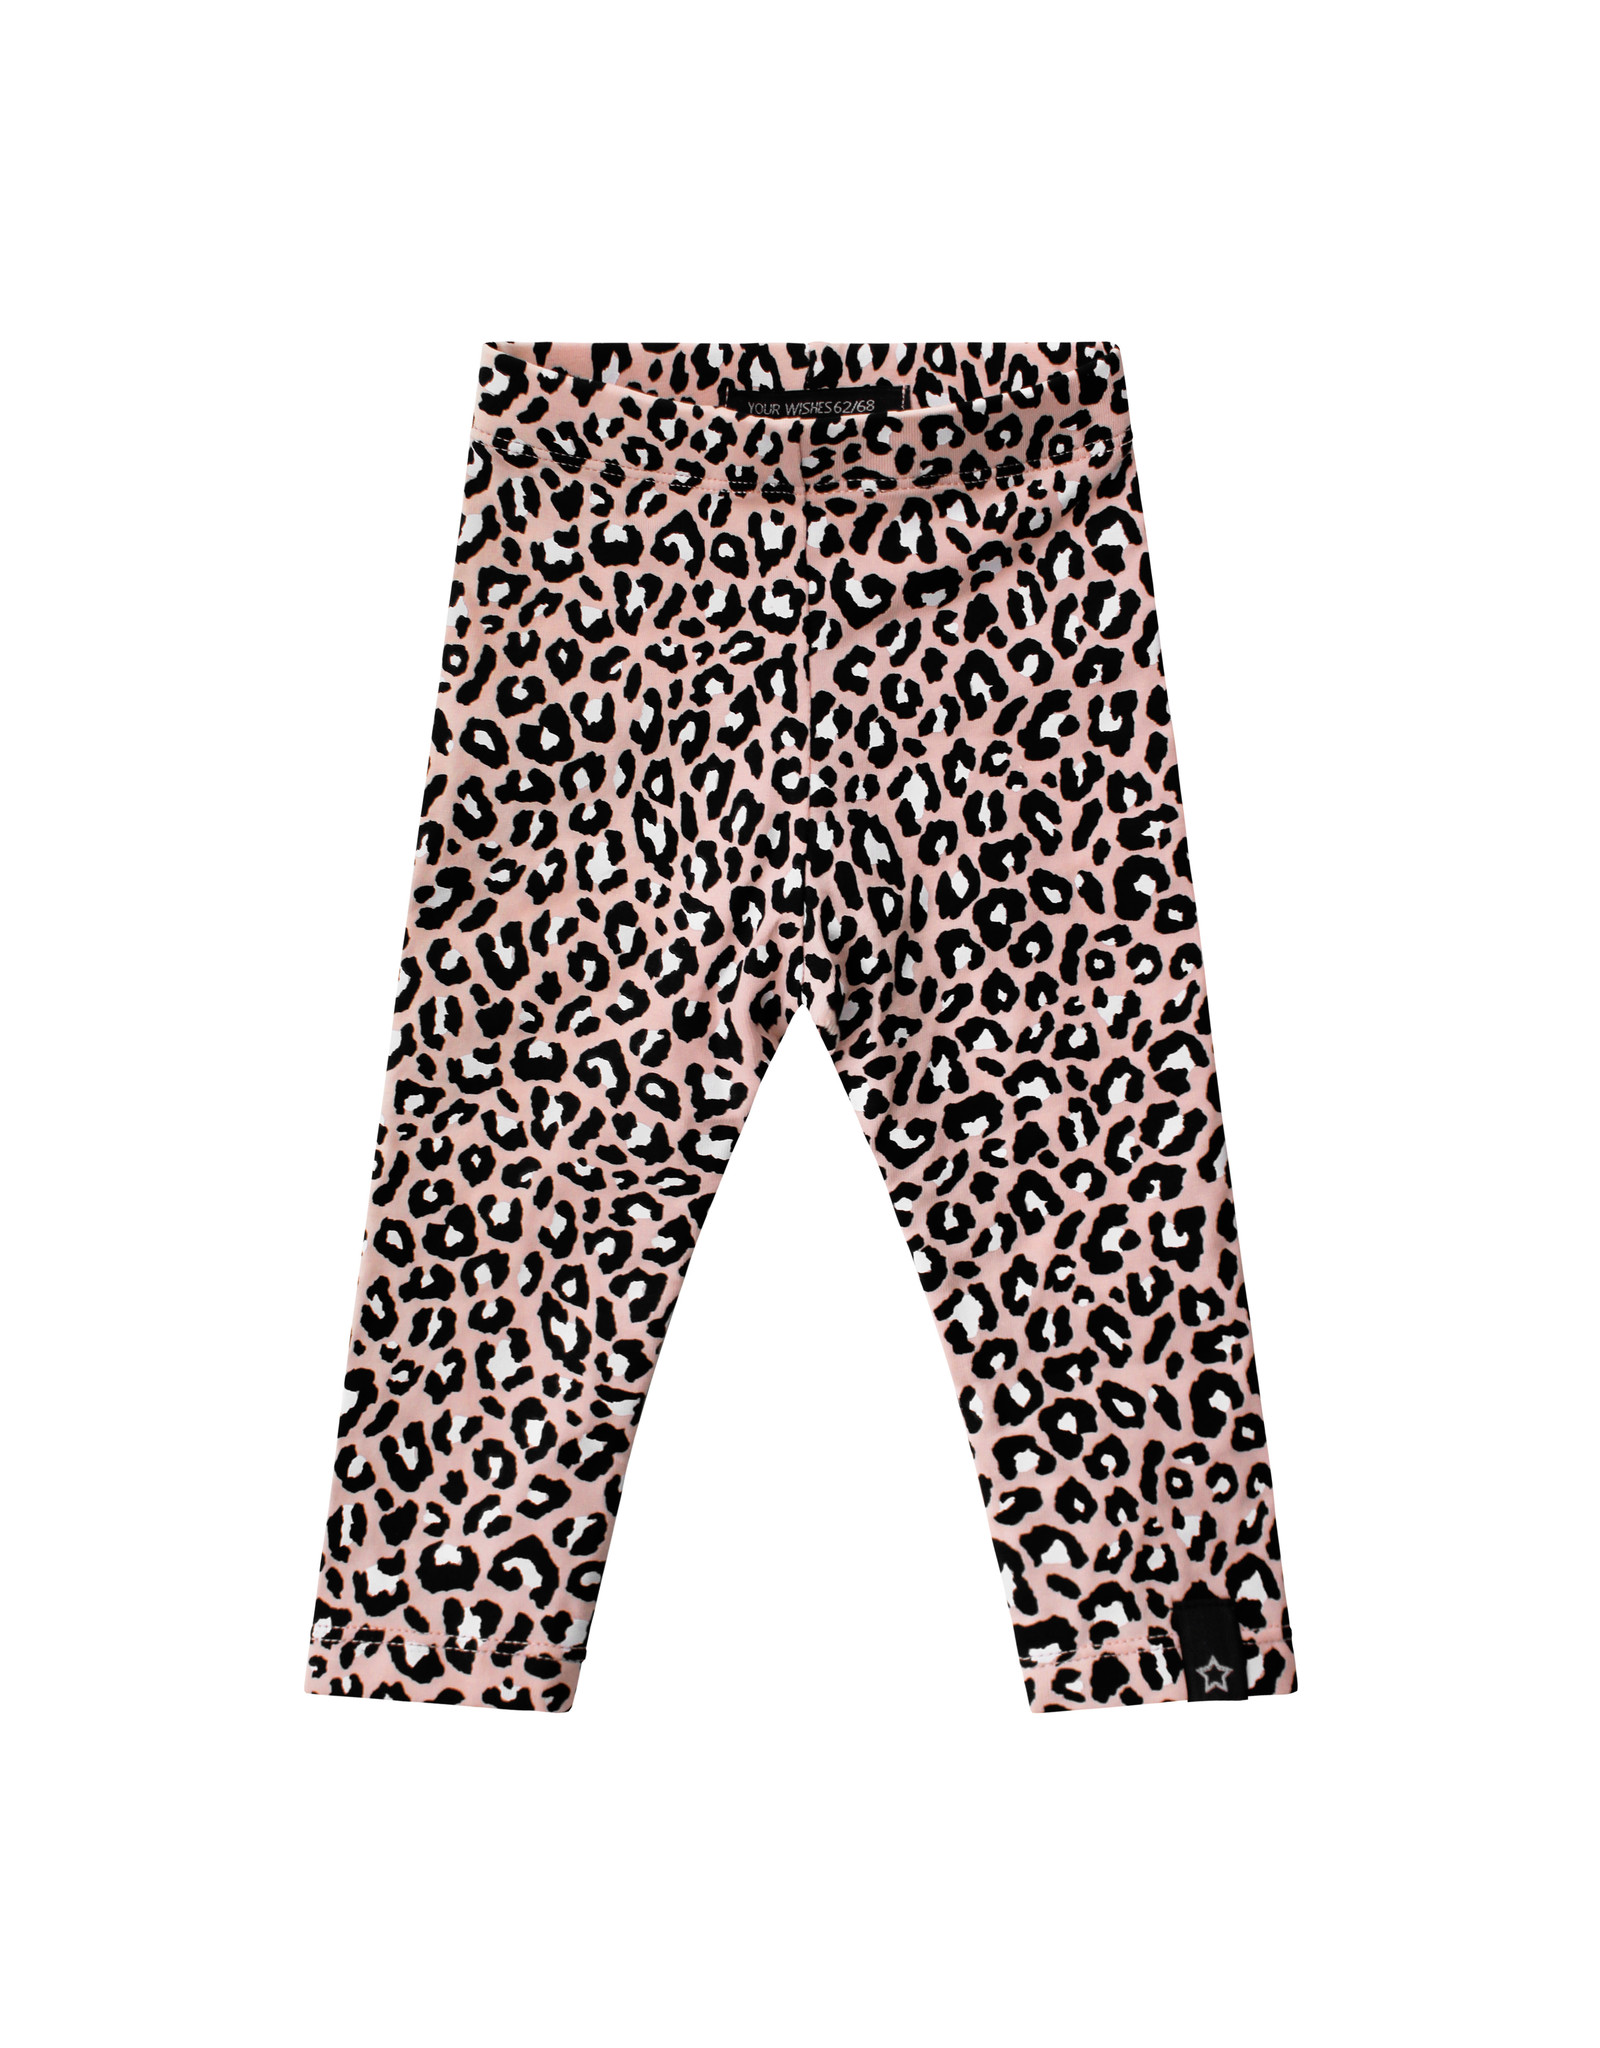 Your Wishes Leopard Pink | Legging